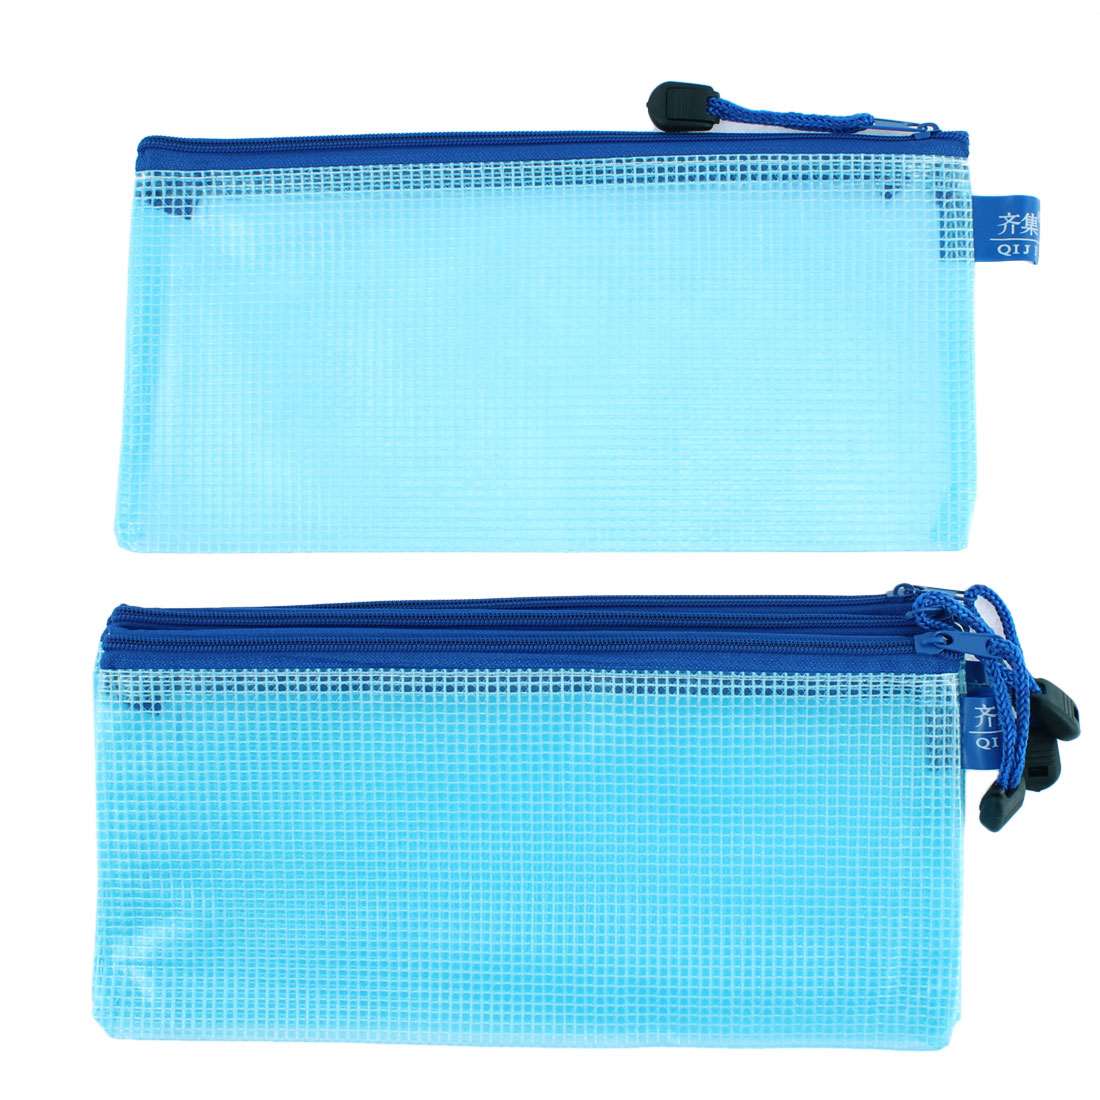 Blue Plastic Zip Closure A5 File Document Bag Pocket Holder 4pcs